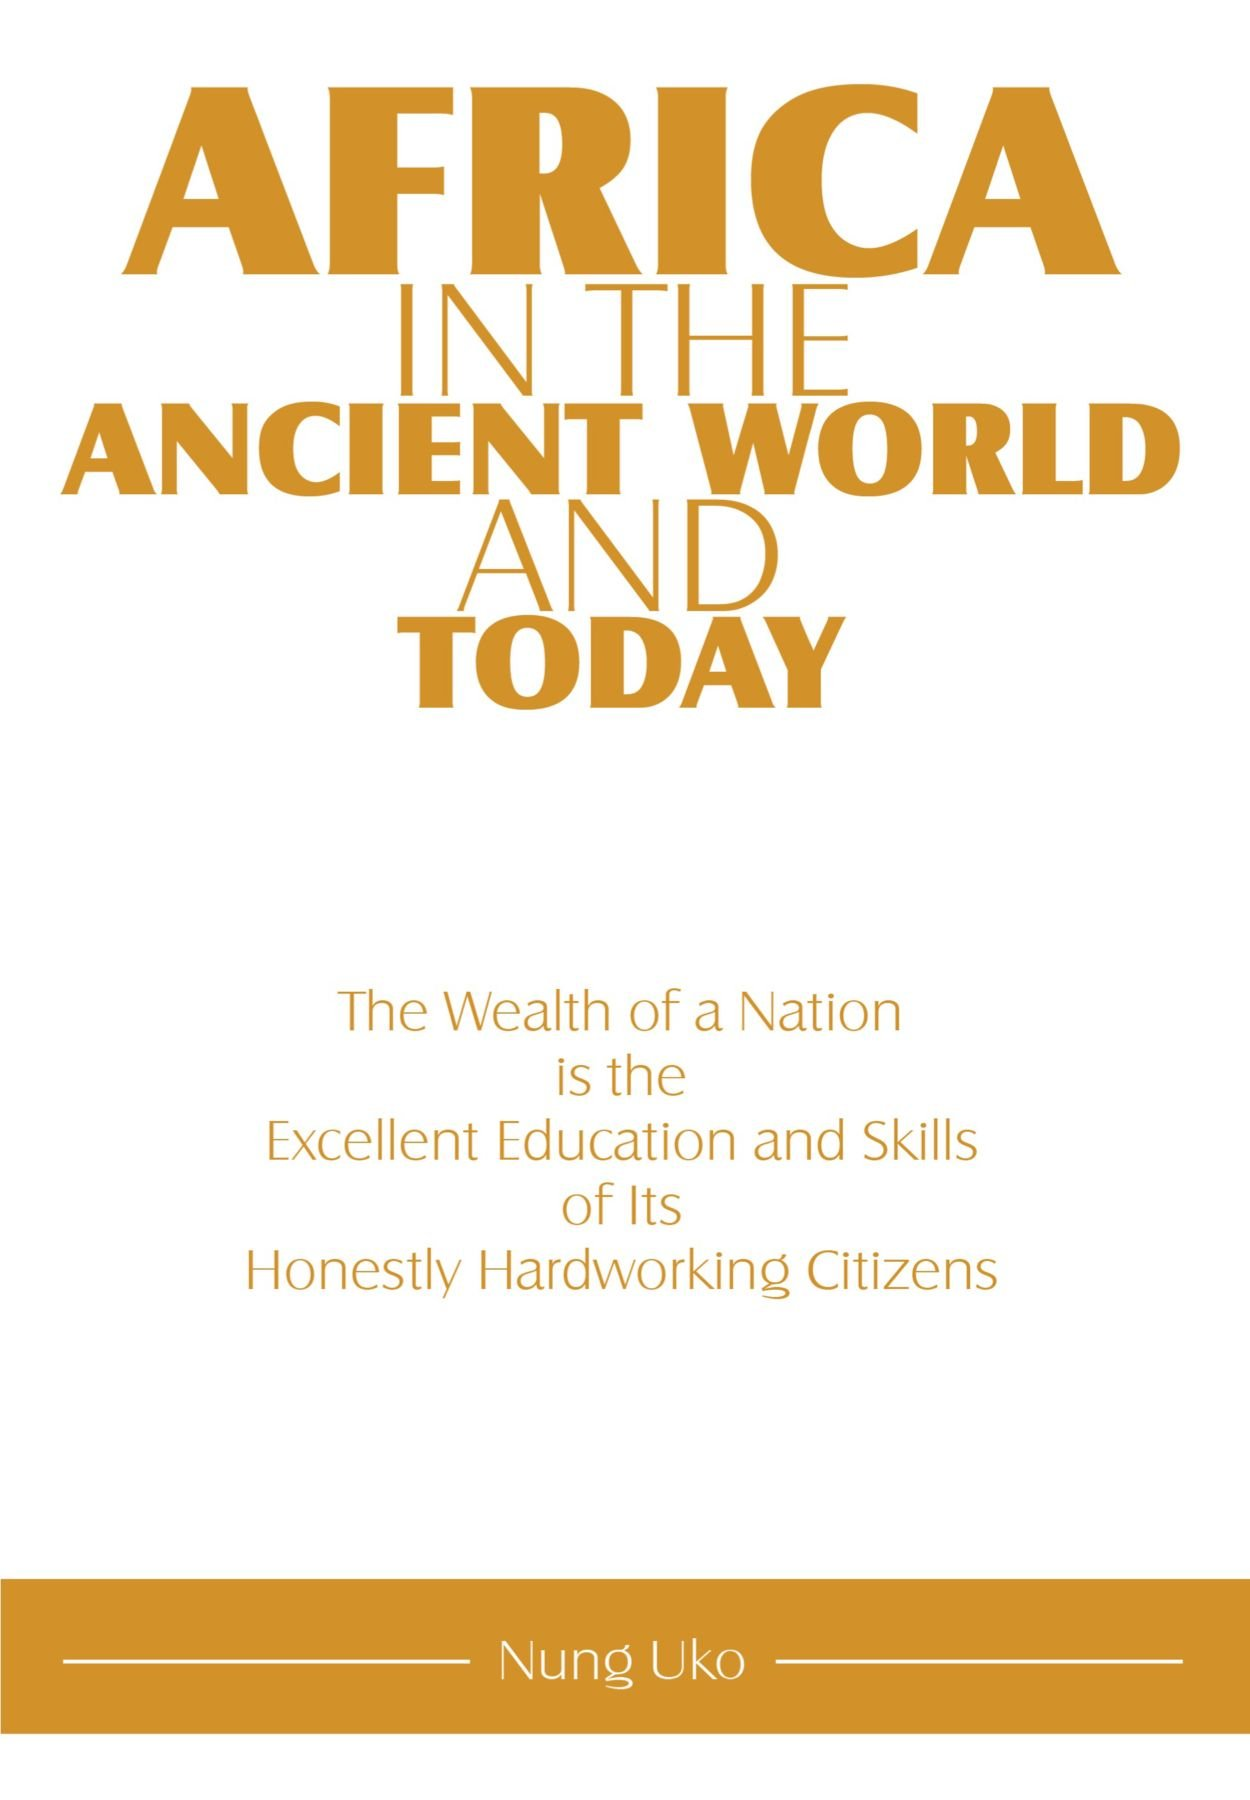 Download Africa in the Ancient World and Today: The Wealth of a Nation is the Excellent Education and Skills of Its Honestly Hardworking Citizens PDF